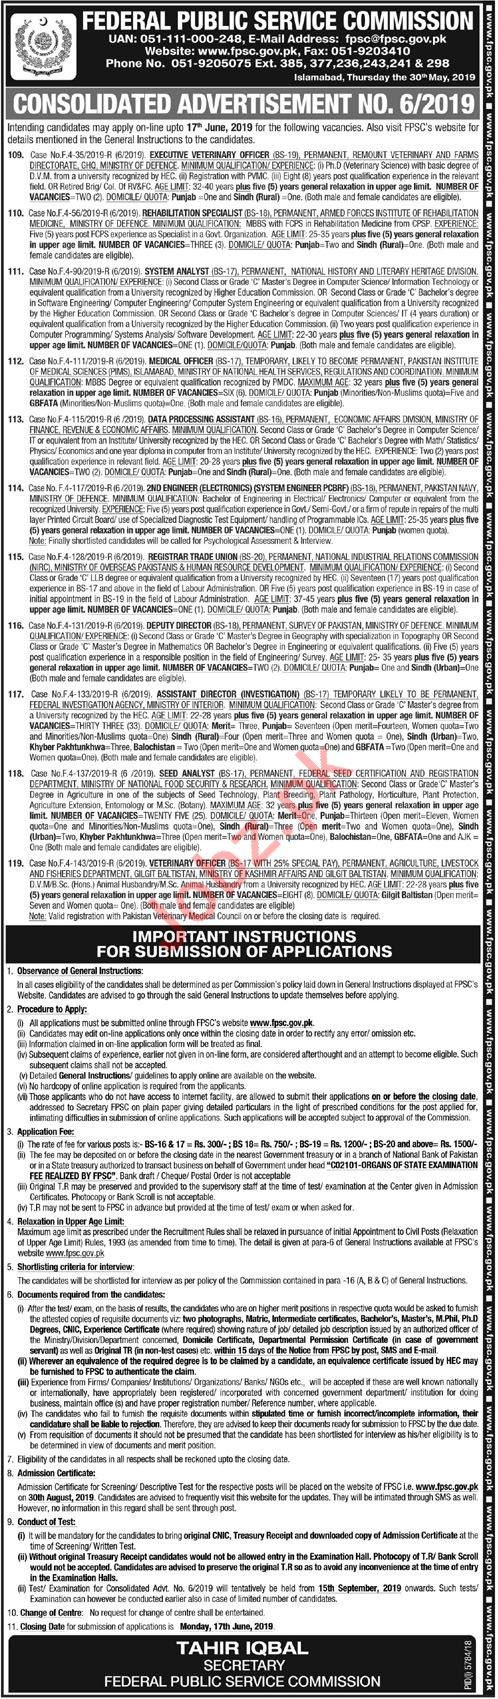 Federeal Public Services Commission FPSC Jobs 2019